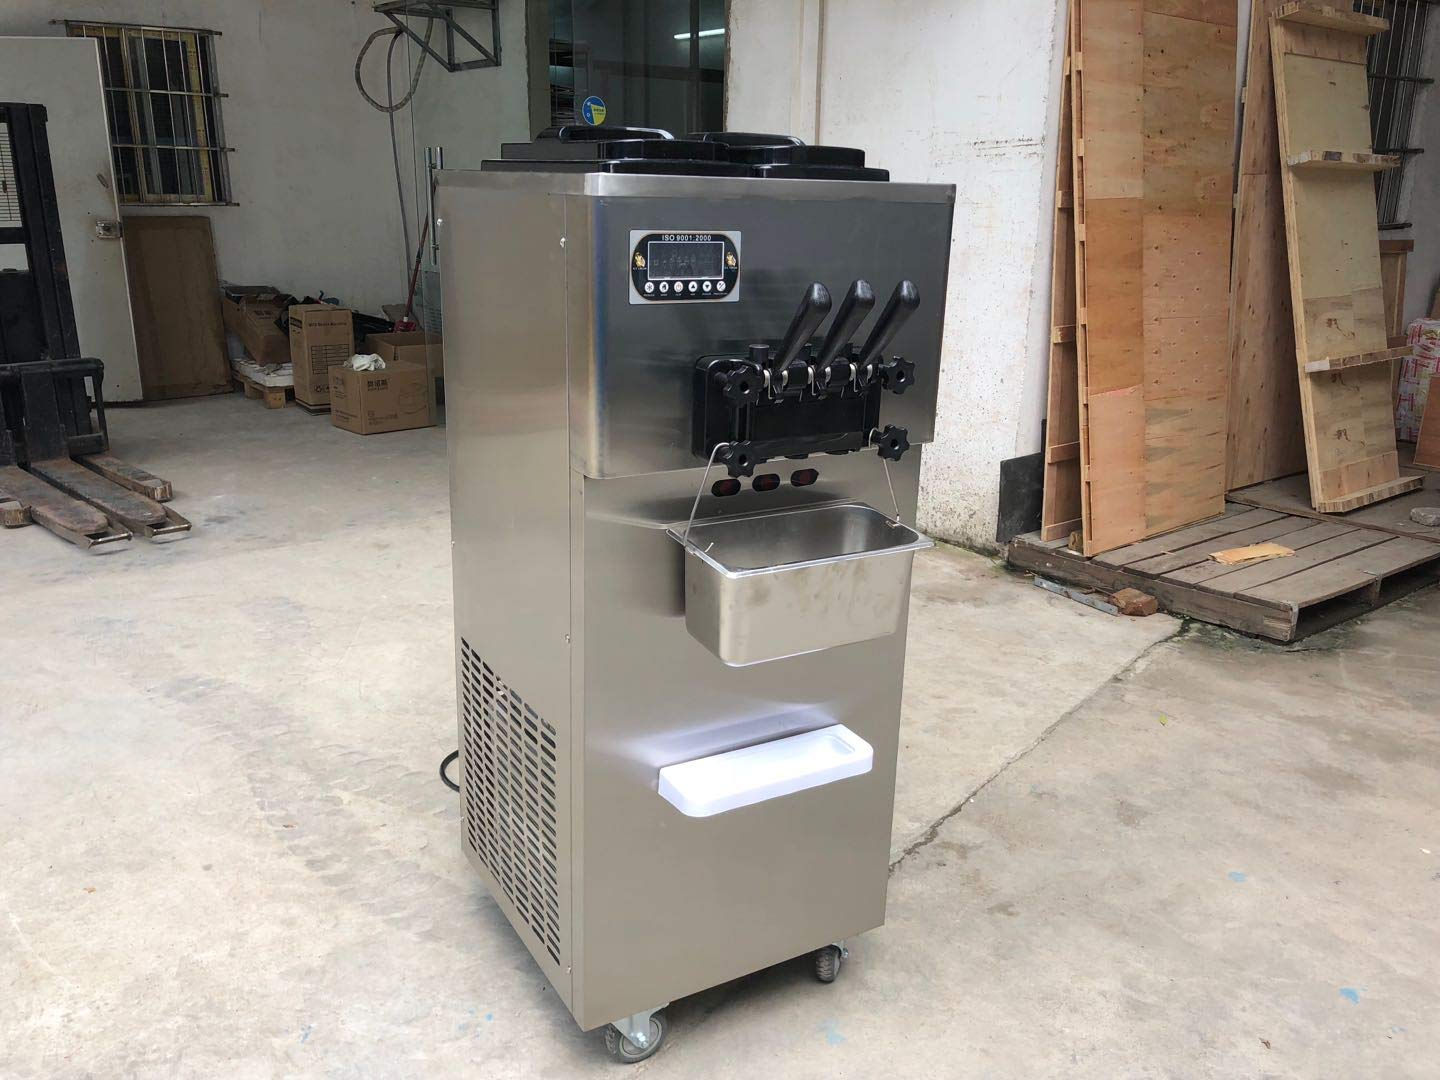 Free shipment to door high production capacity cheap price Kolice yogurt soft serve ice cream machine taylor 2+1 mixed flavors soft ice cream machine with 2*10L big hopper, 2*2L big cylinder,Stainless steel beater,gear box,Panasonic compressor,auto precooling, countering function